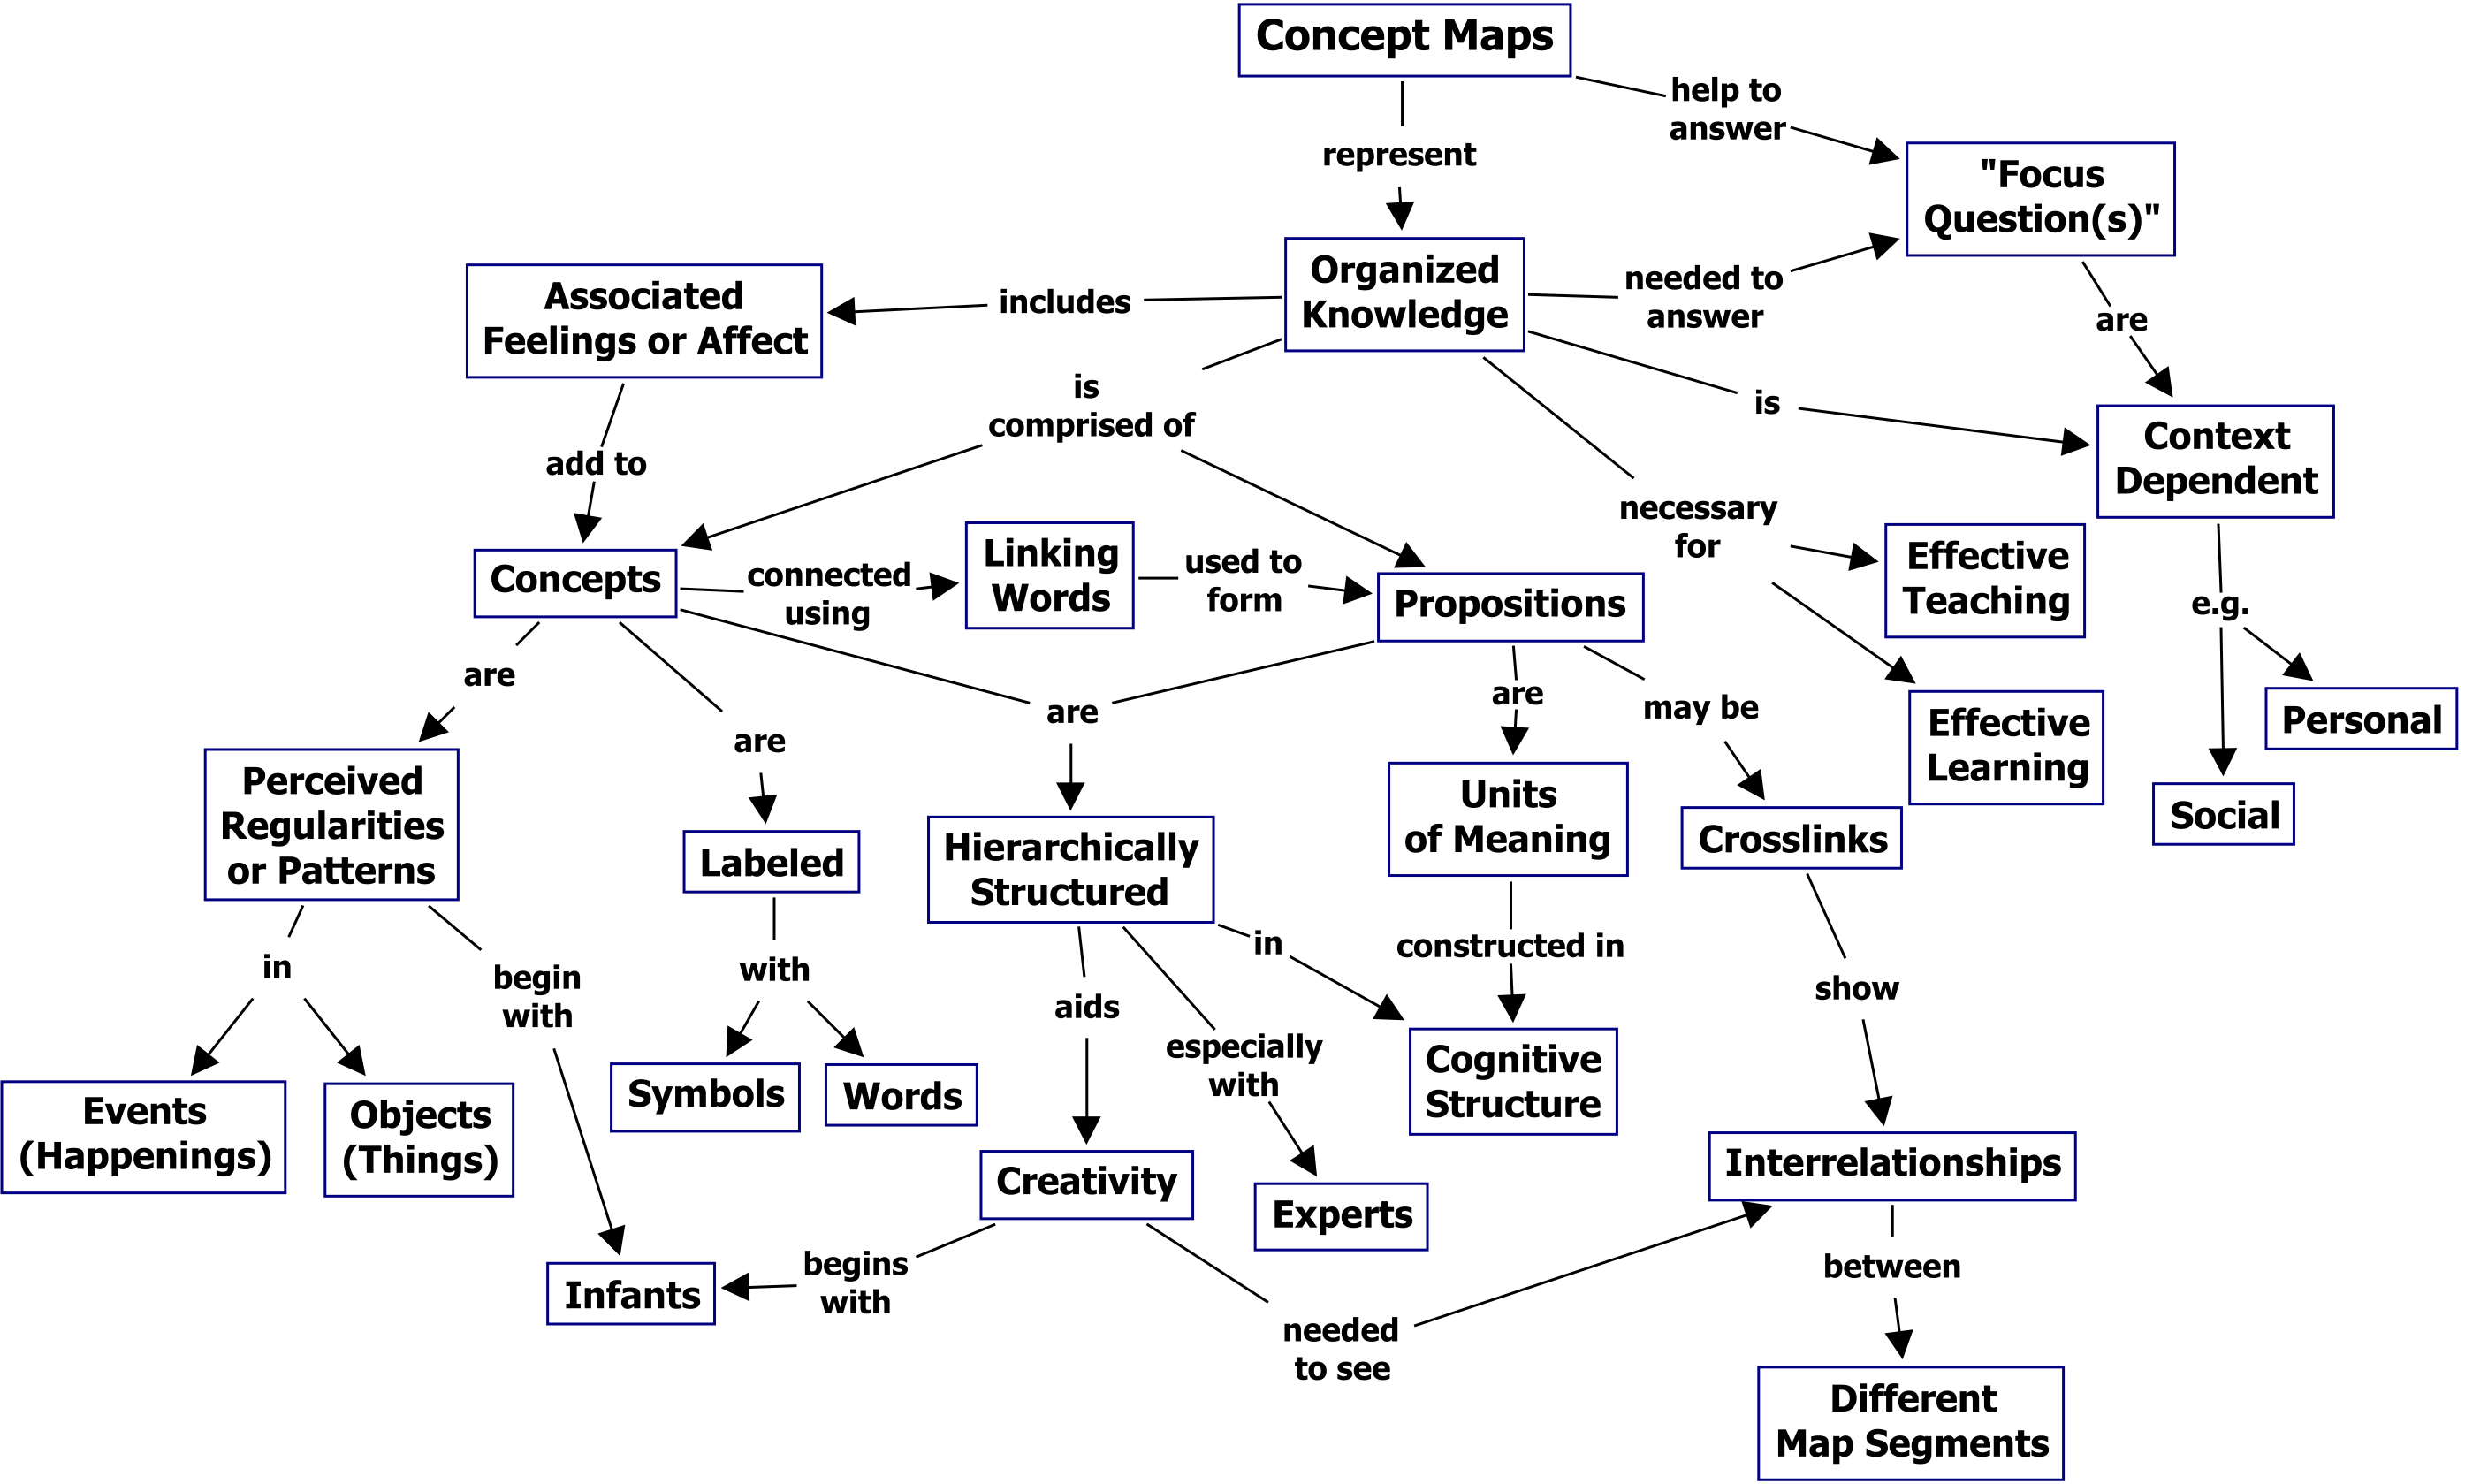 The Theory Underlying Concept Maps and How to Construct and Use Them